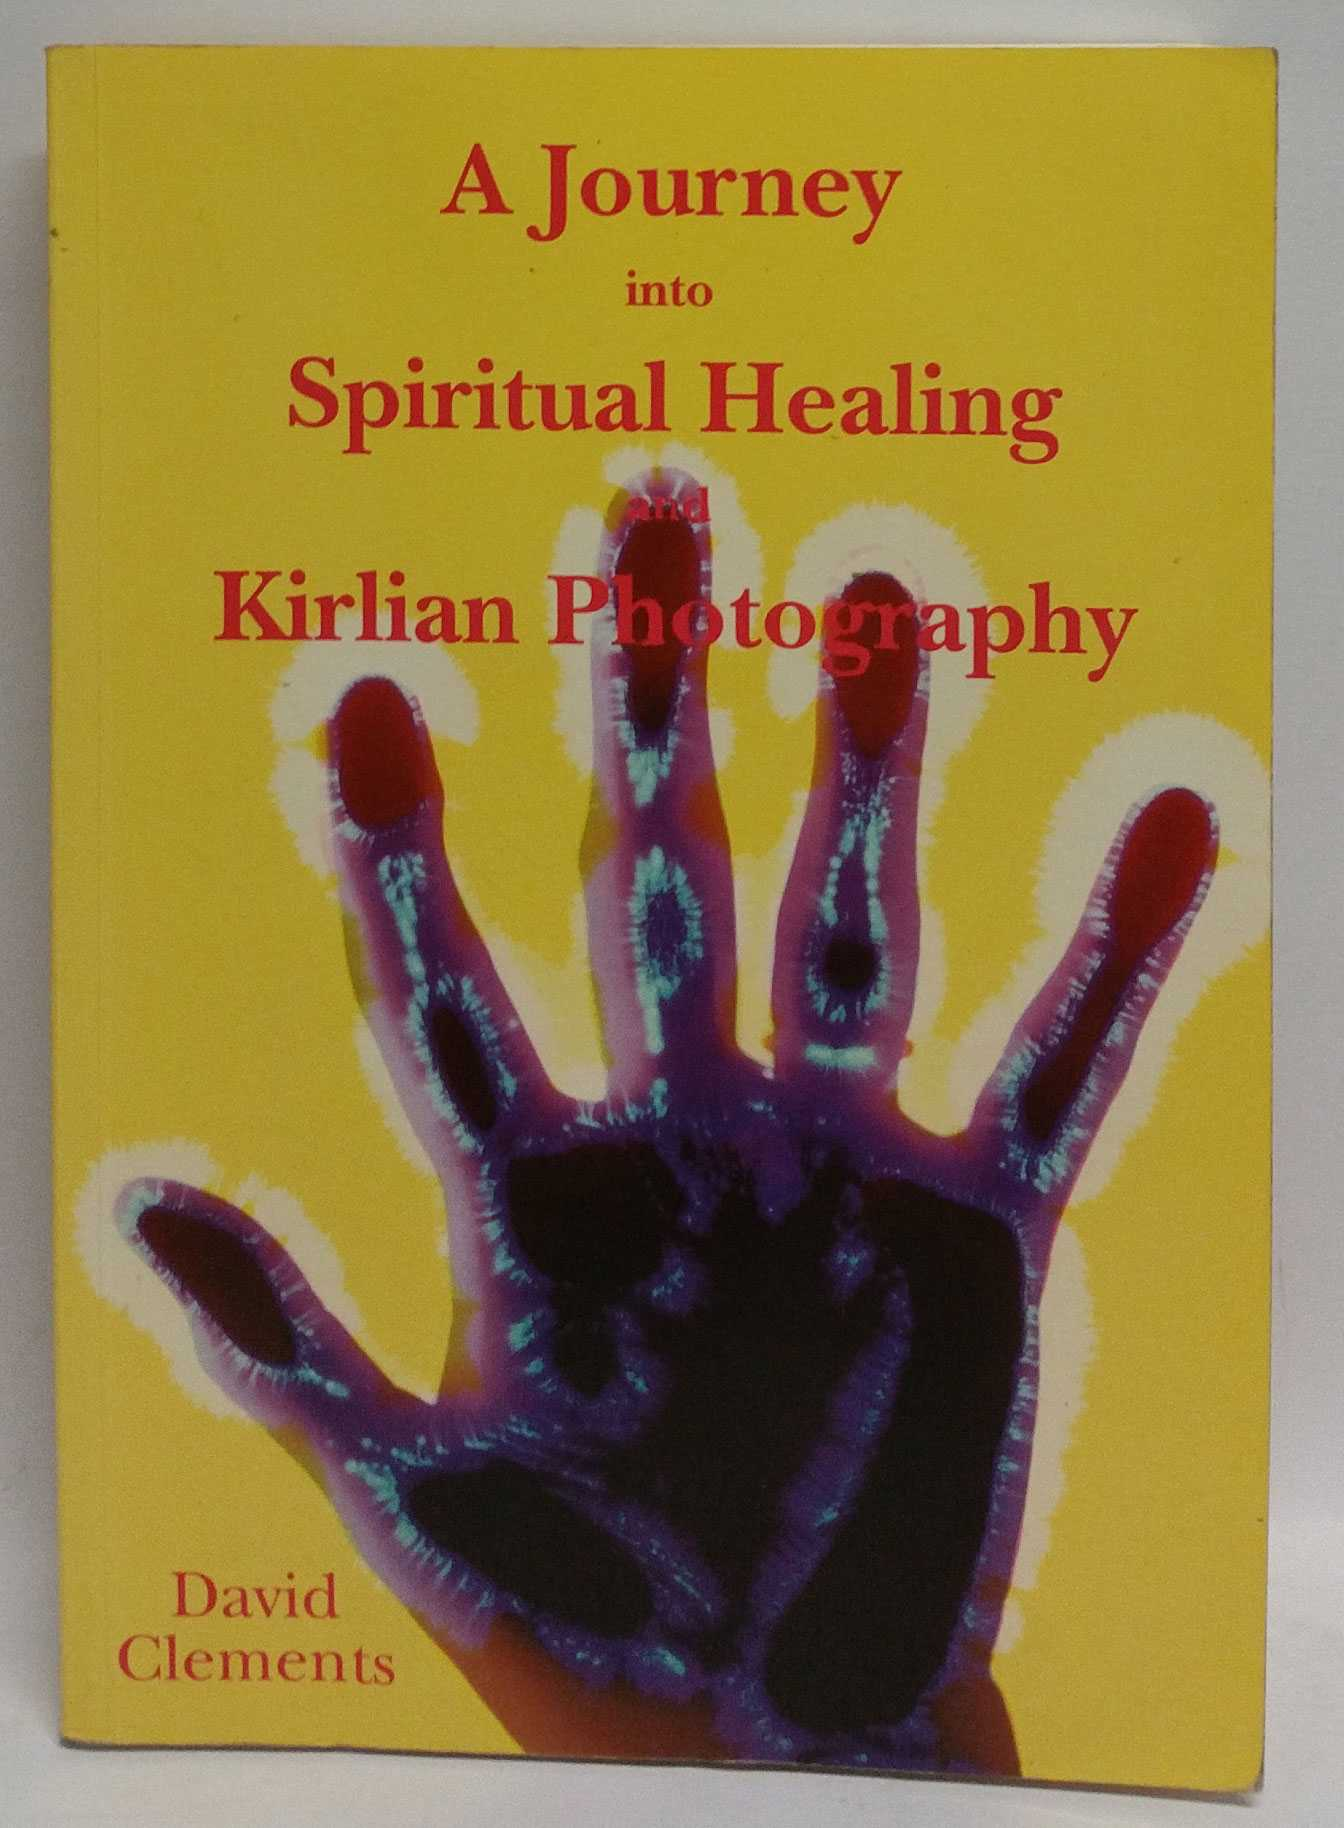 A Journey into Spiritual Healing and Kirlian Photography, David Clements